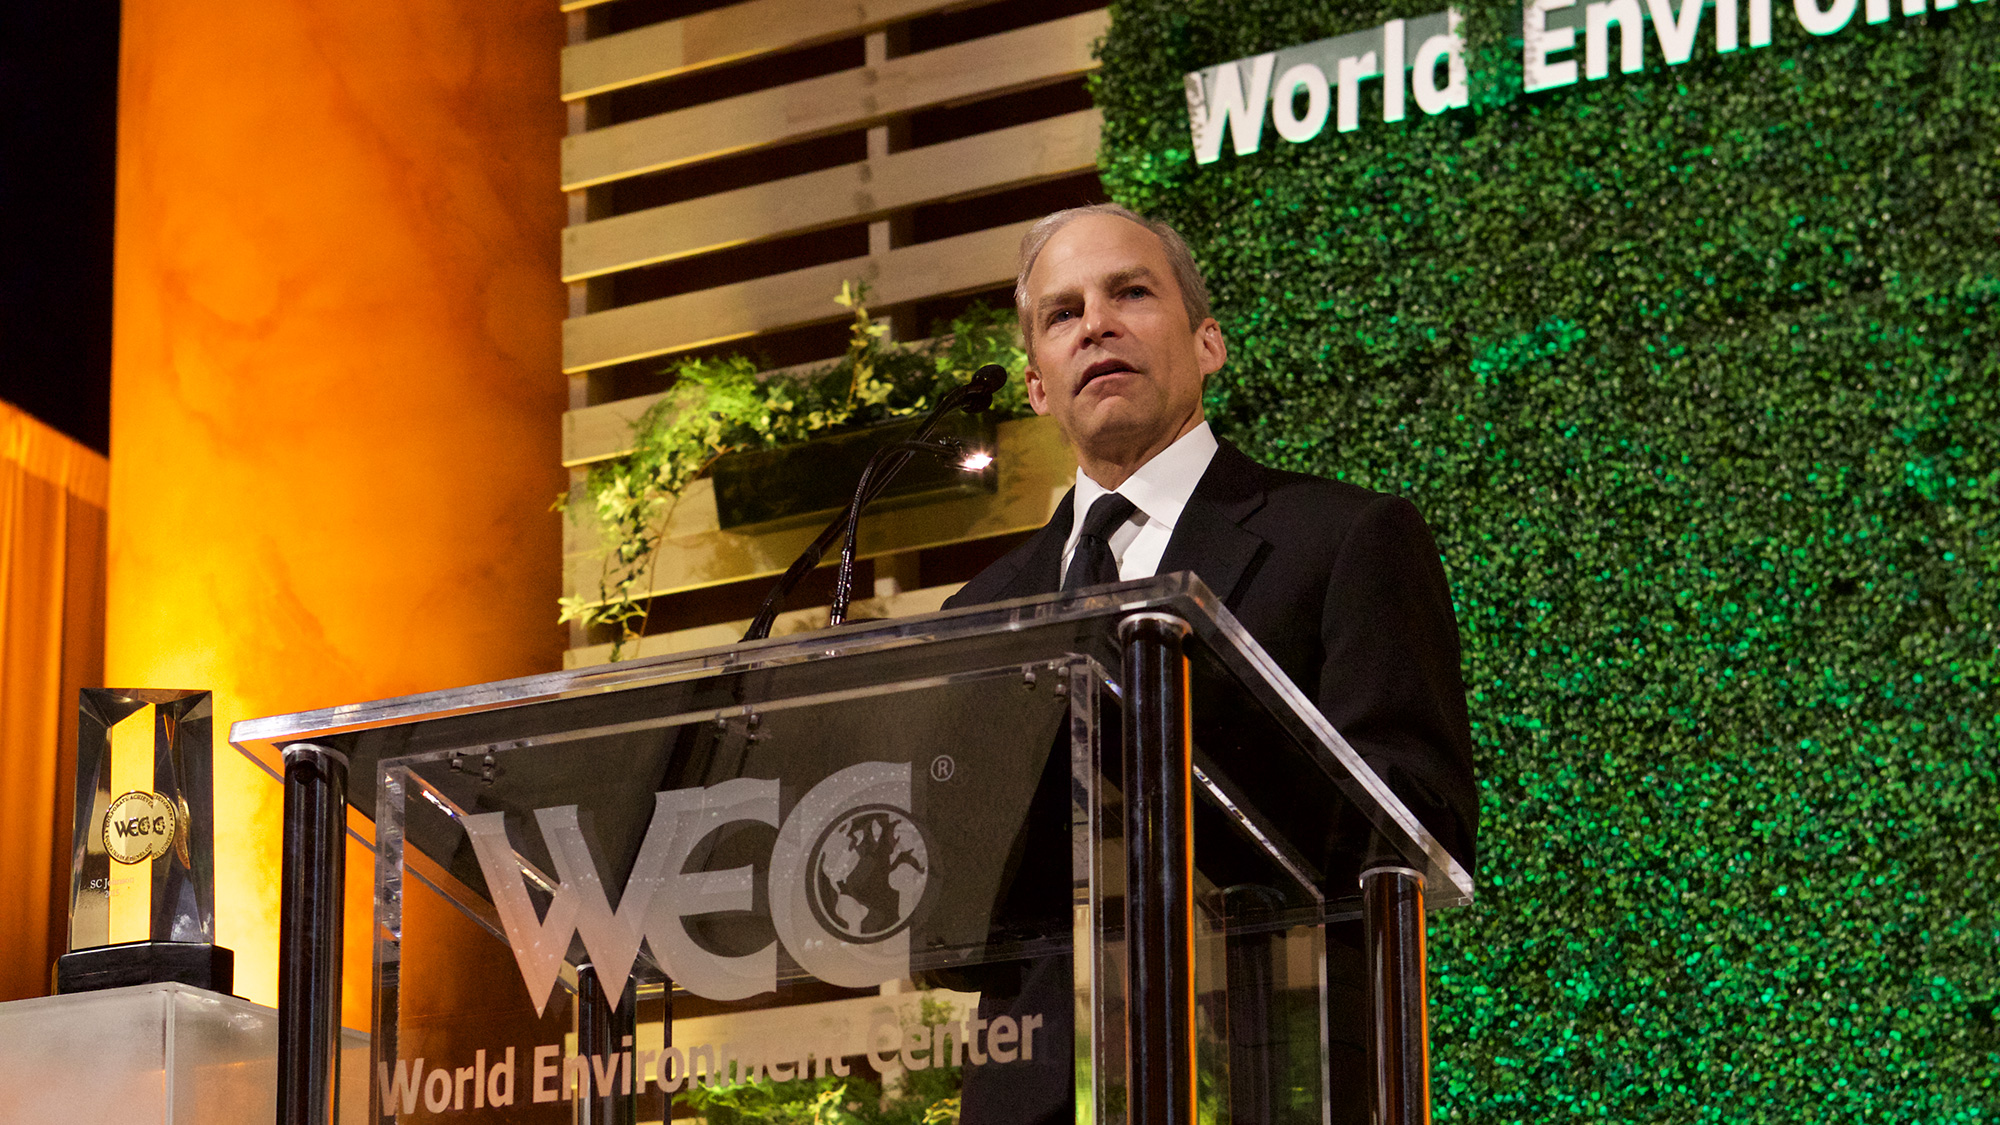 Fisk Johnson receiving the World Environment Center's Gold Medal for International Corporate Achievement in Sustainable Development.